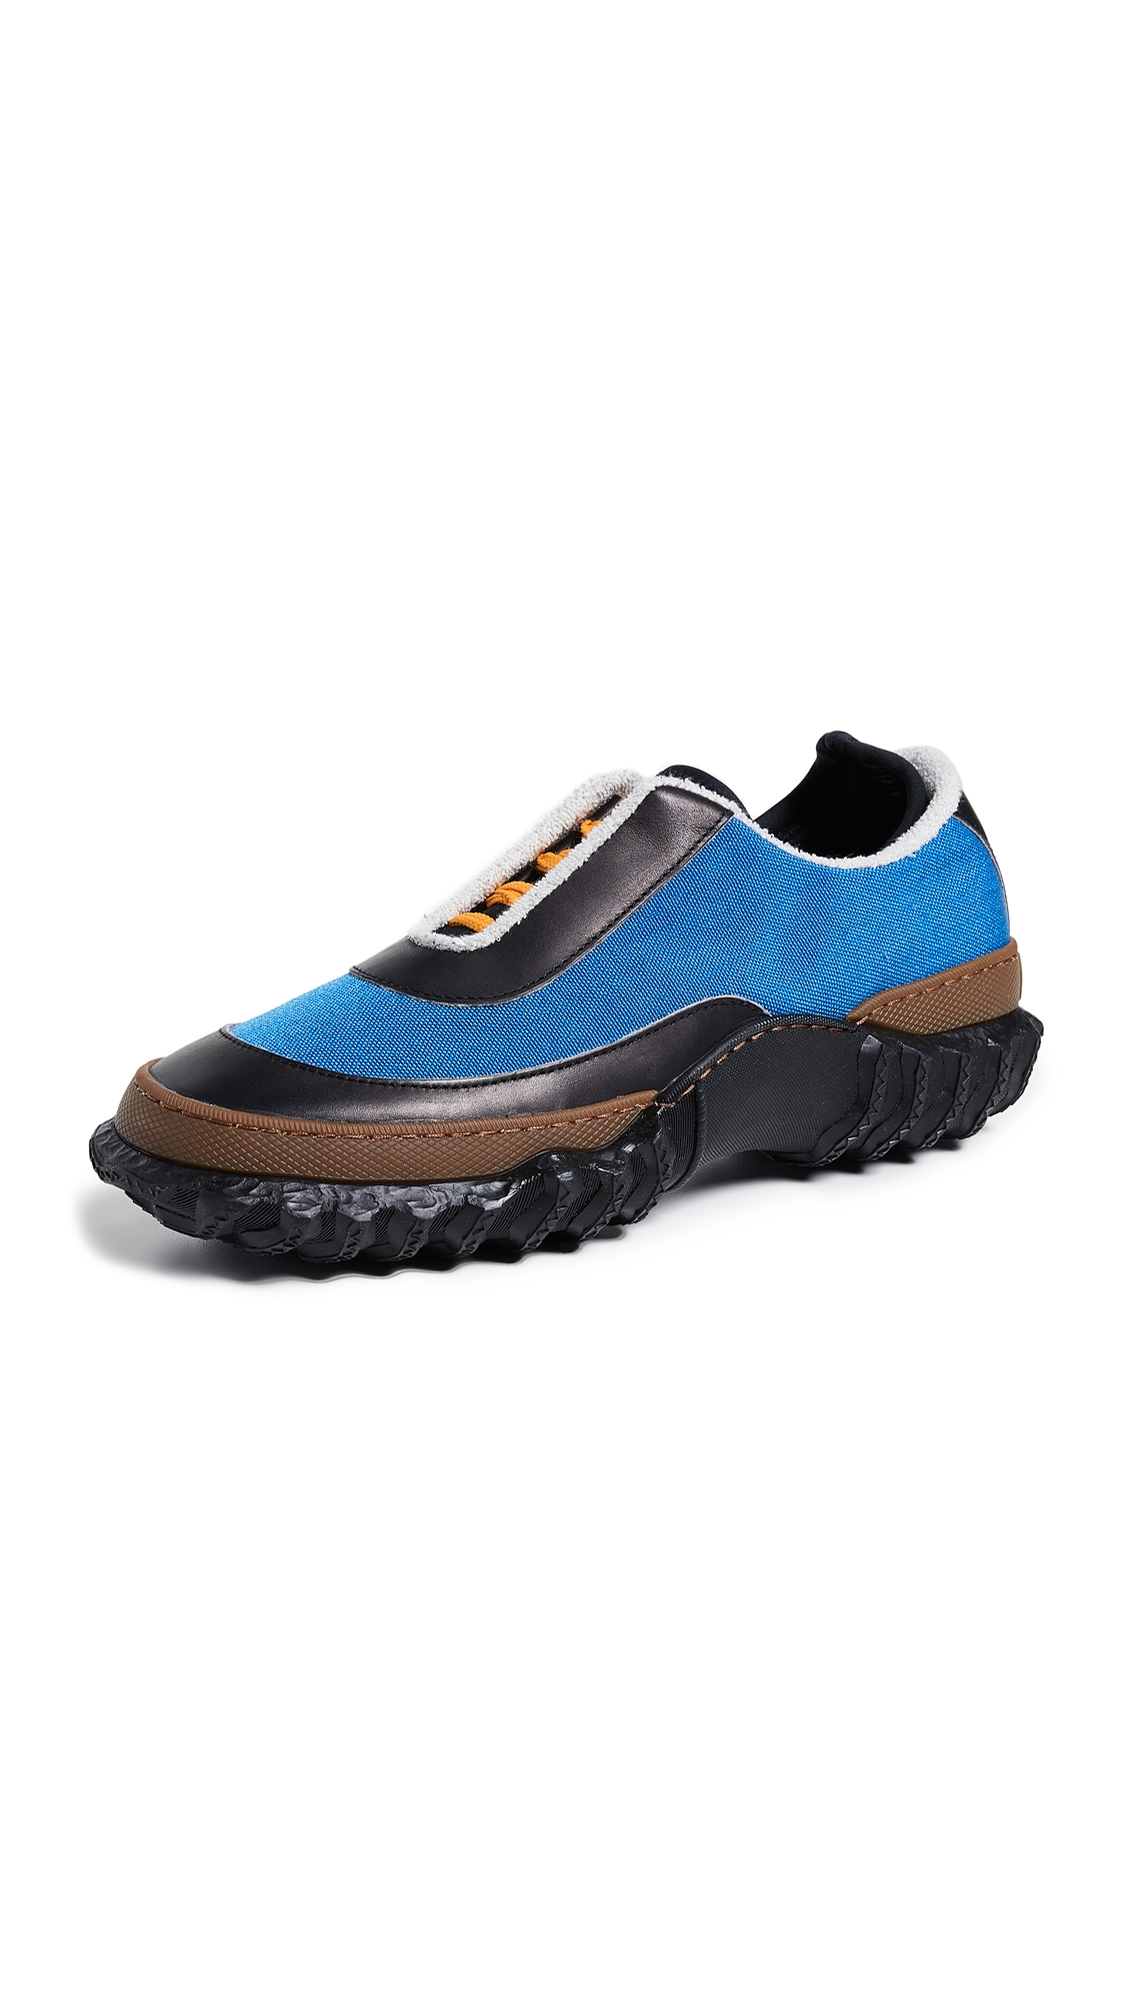 MARNI EXAGGERATED SOLE SNEAKERS